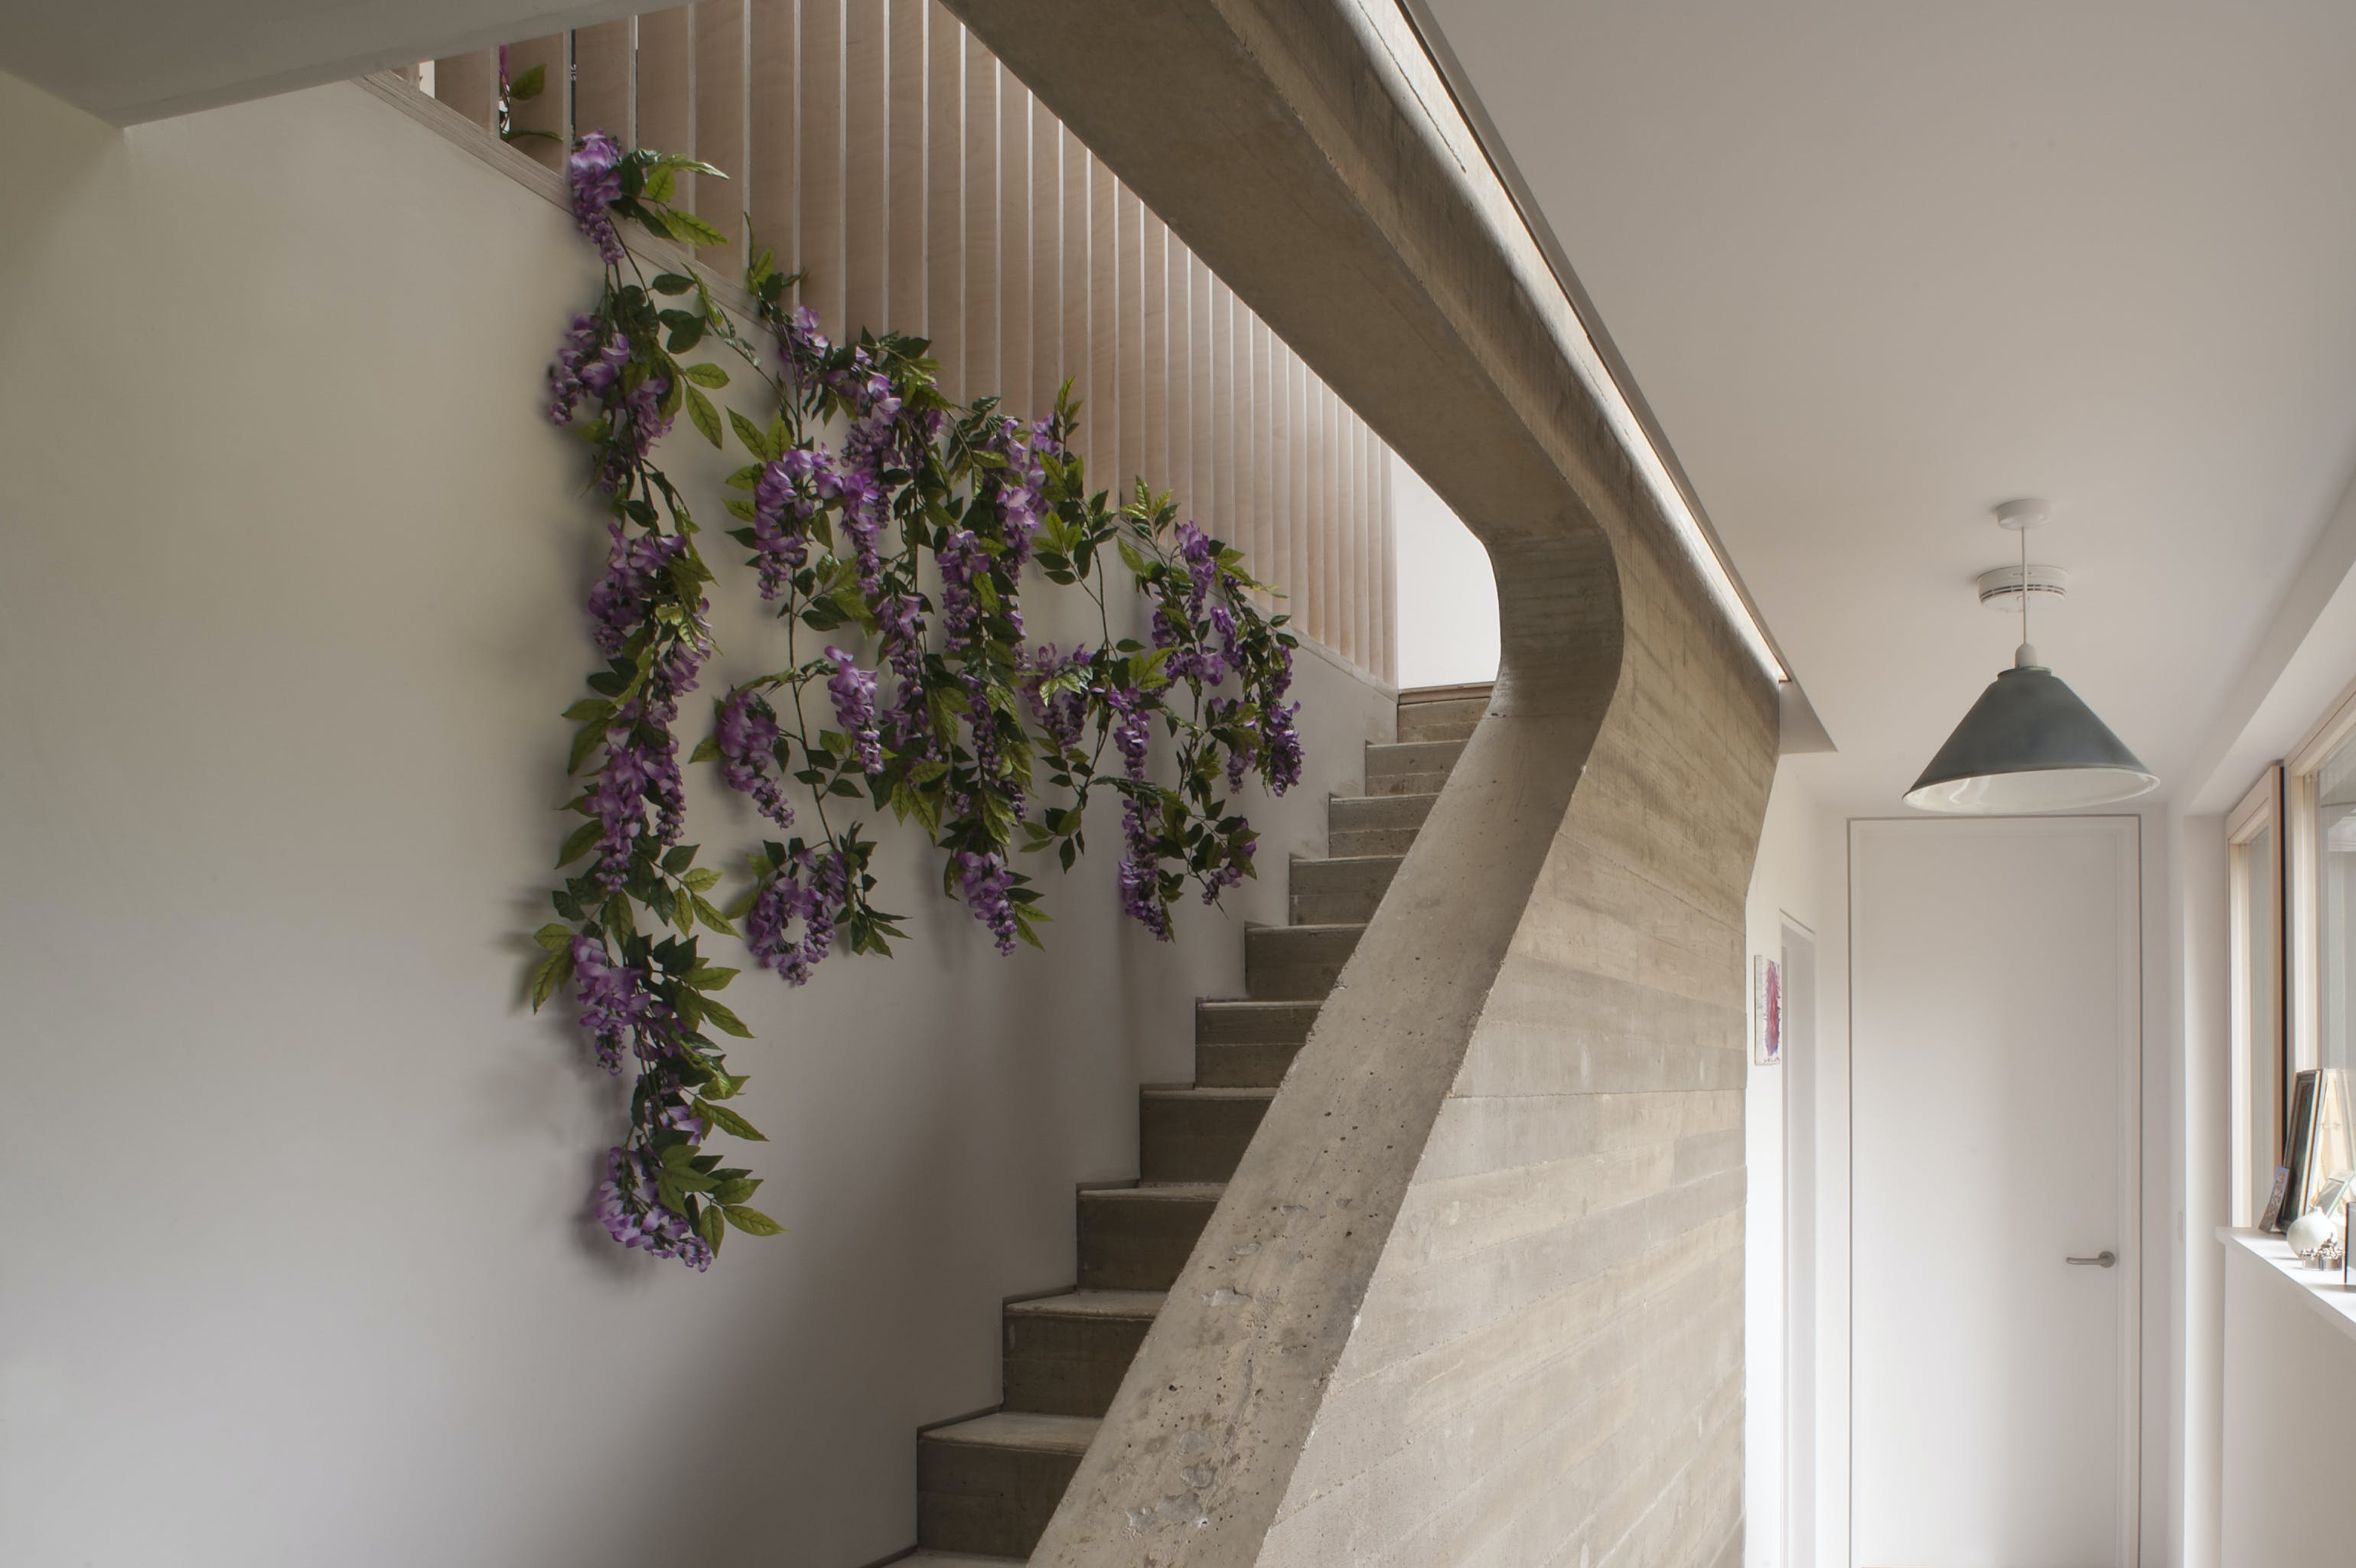 Artificial purple wisteria garland on staircase